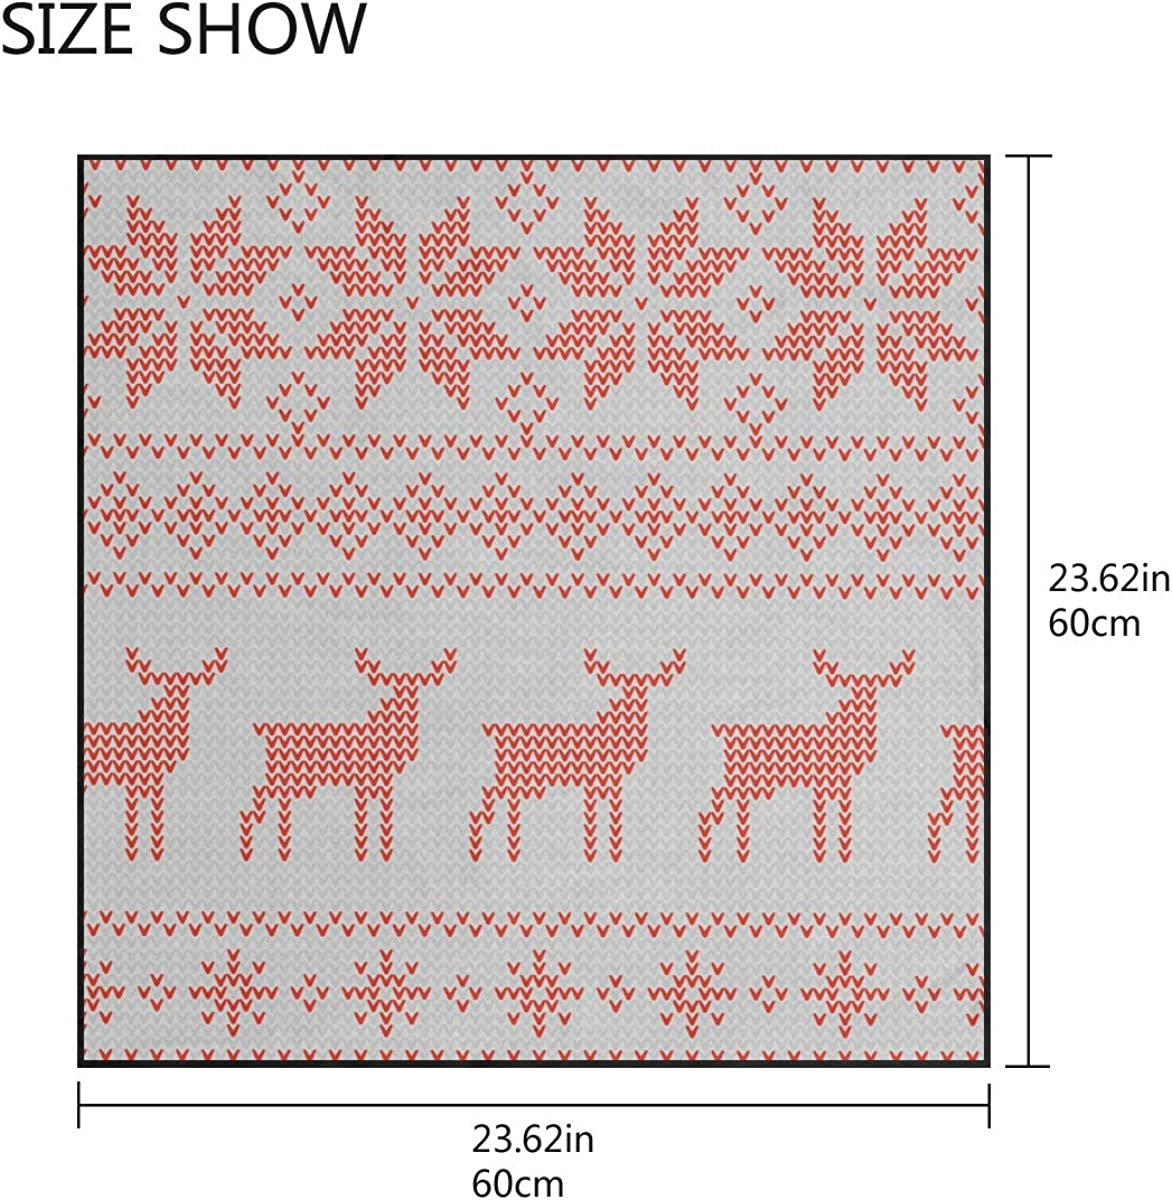 Soft Polyester Silk Ladies Scarfs Fashion Print Knit Reindeer Star And Snowflake Lightweight Scarfs Hair Scarf Neck Womens Neck Scarf Multiple Ways Of Wearing Daily Decor